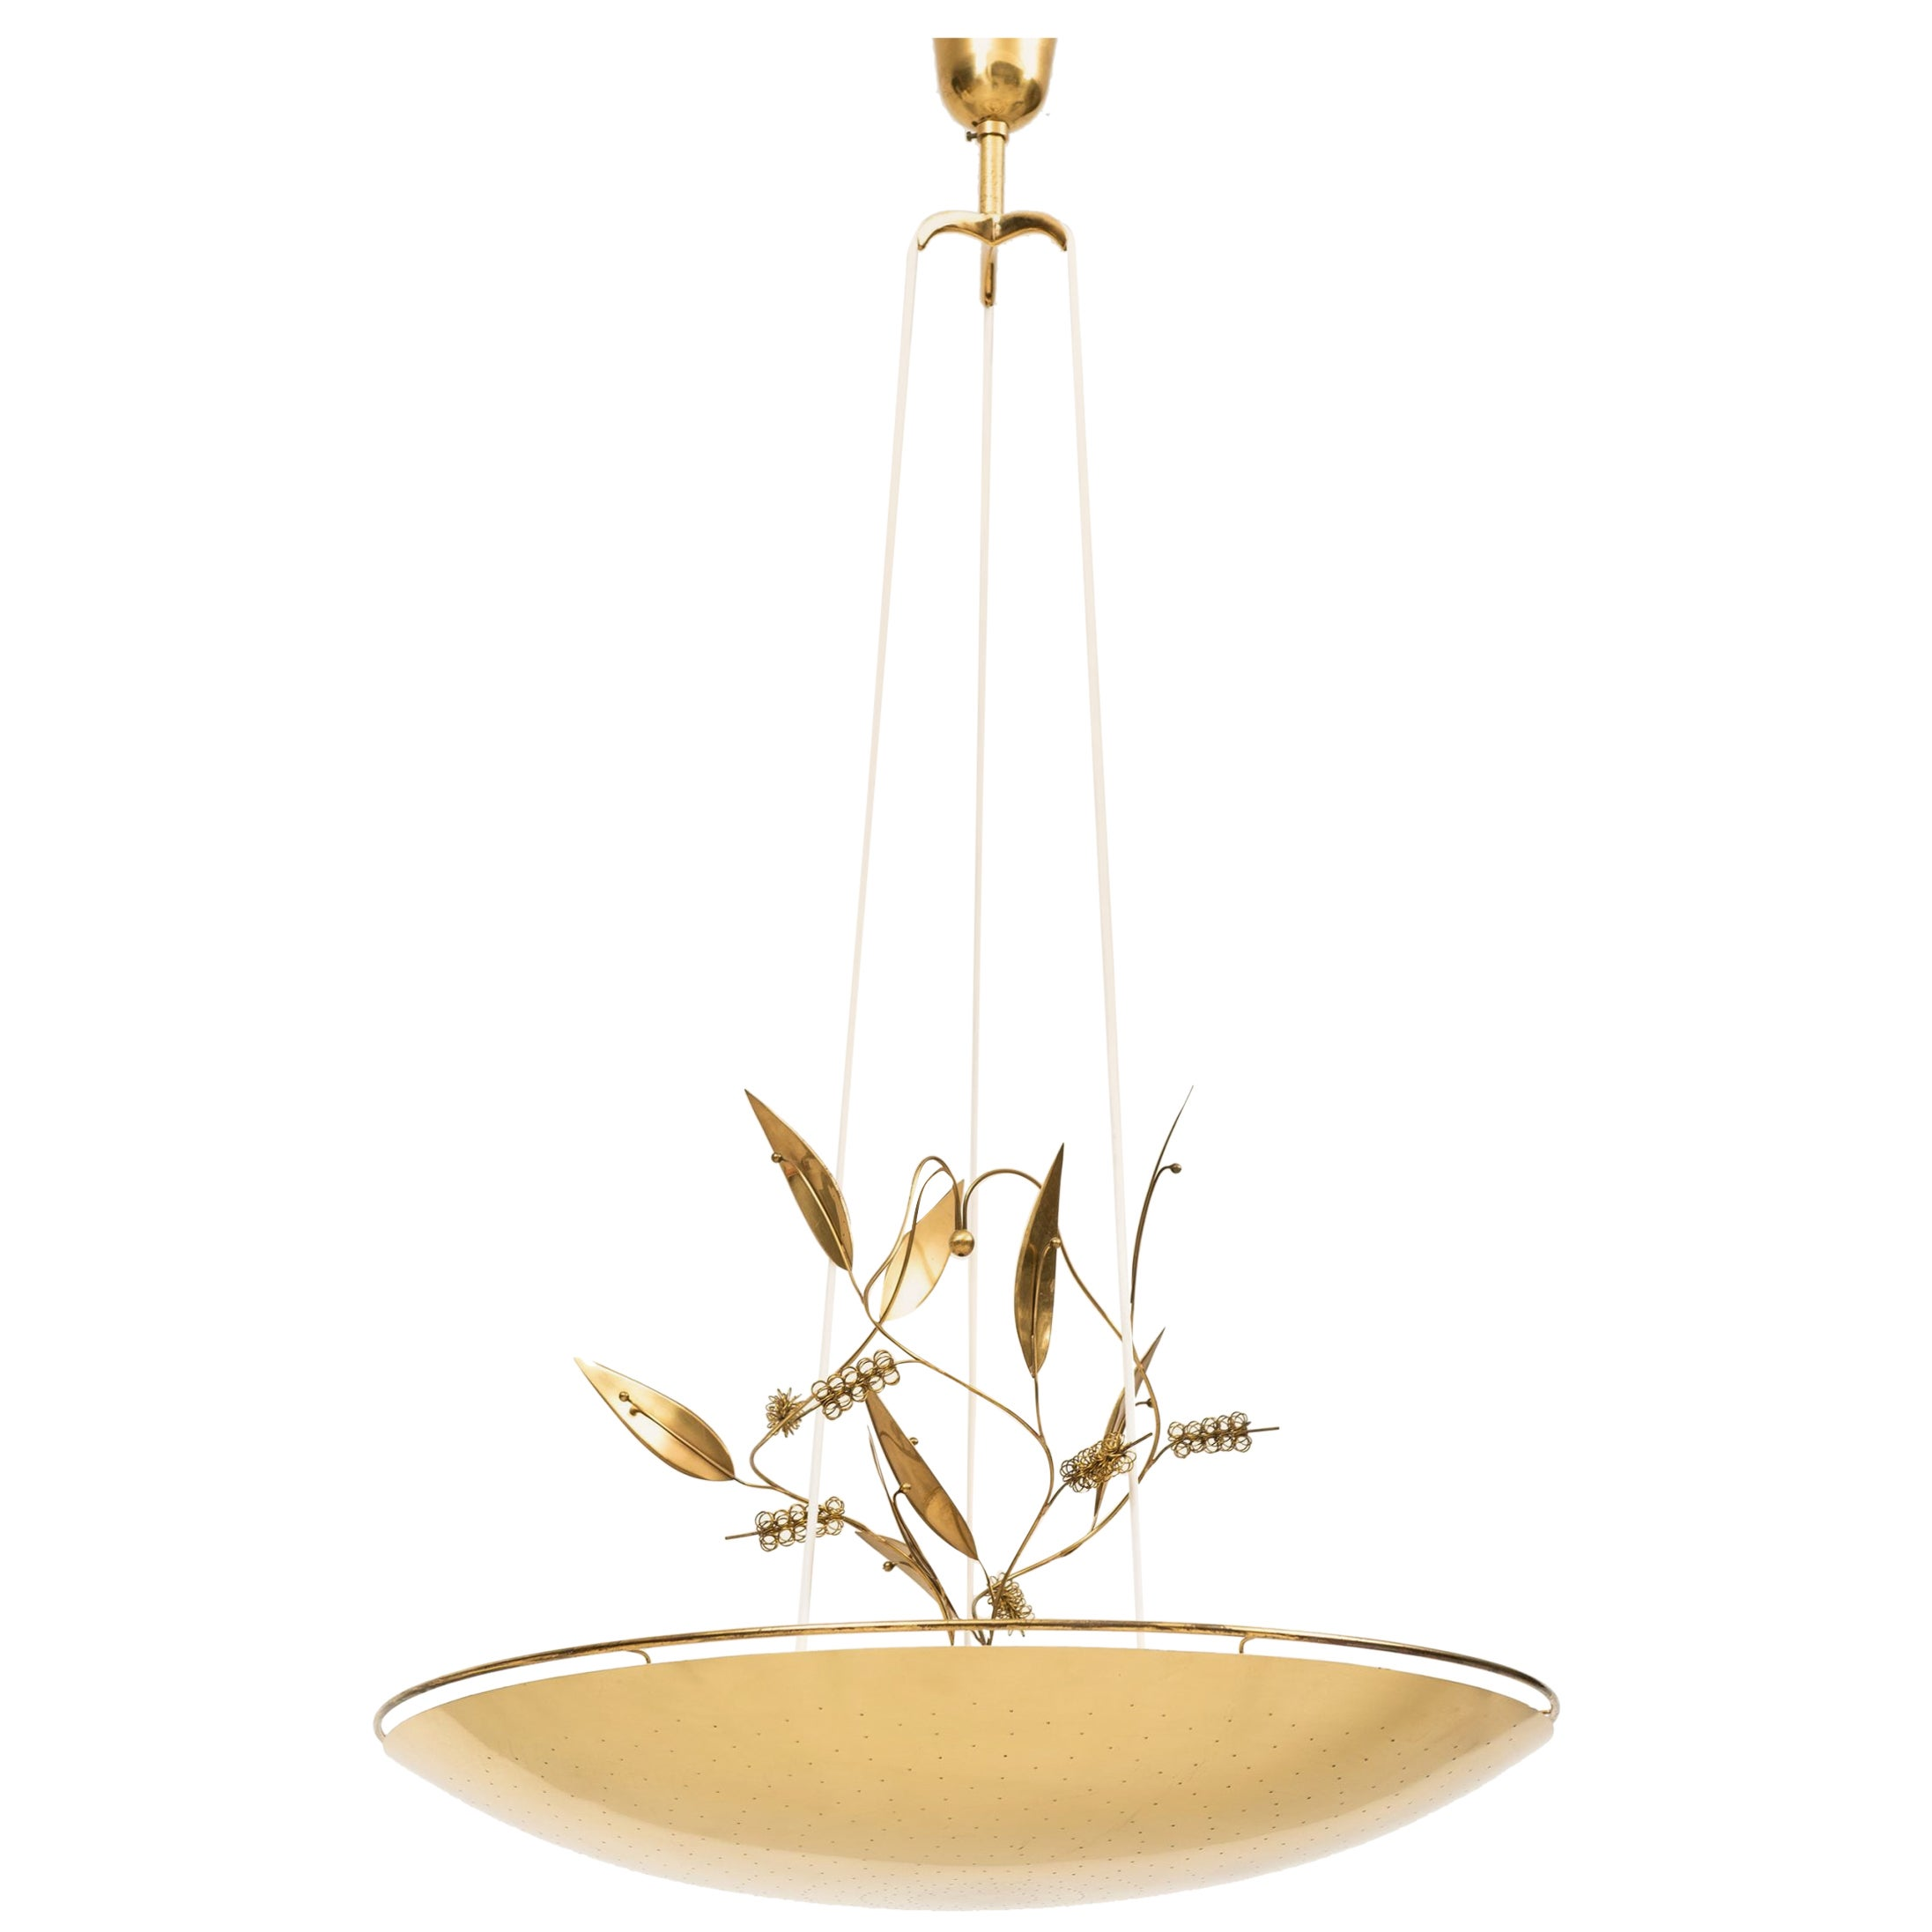 Paavo Tynell Ceiling Lamps Model K2-33 Produced by Taito Oy in Finland